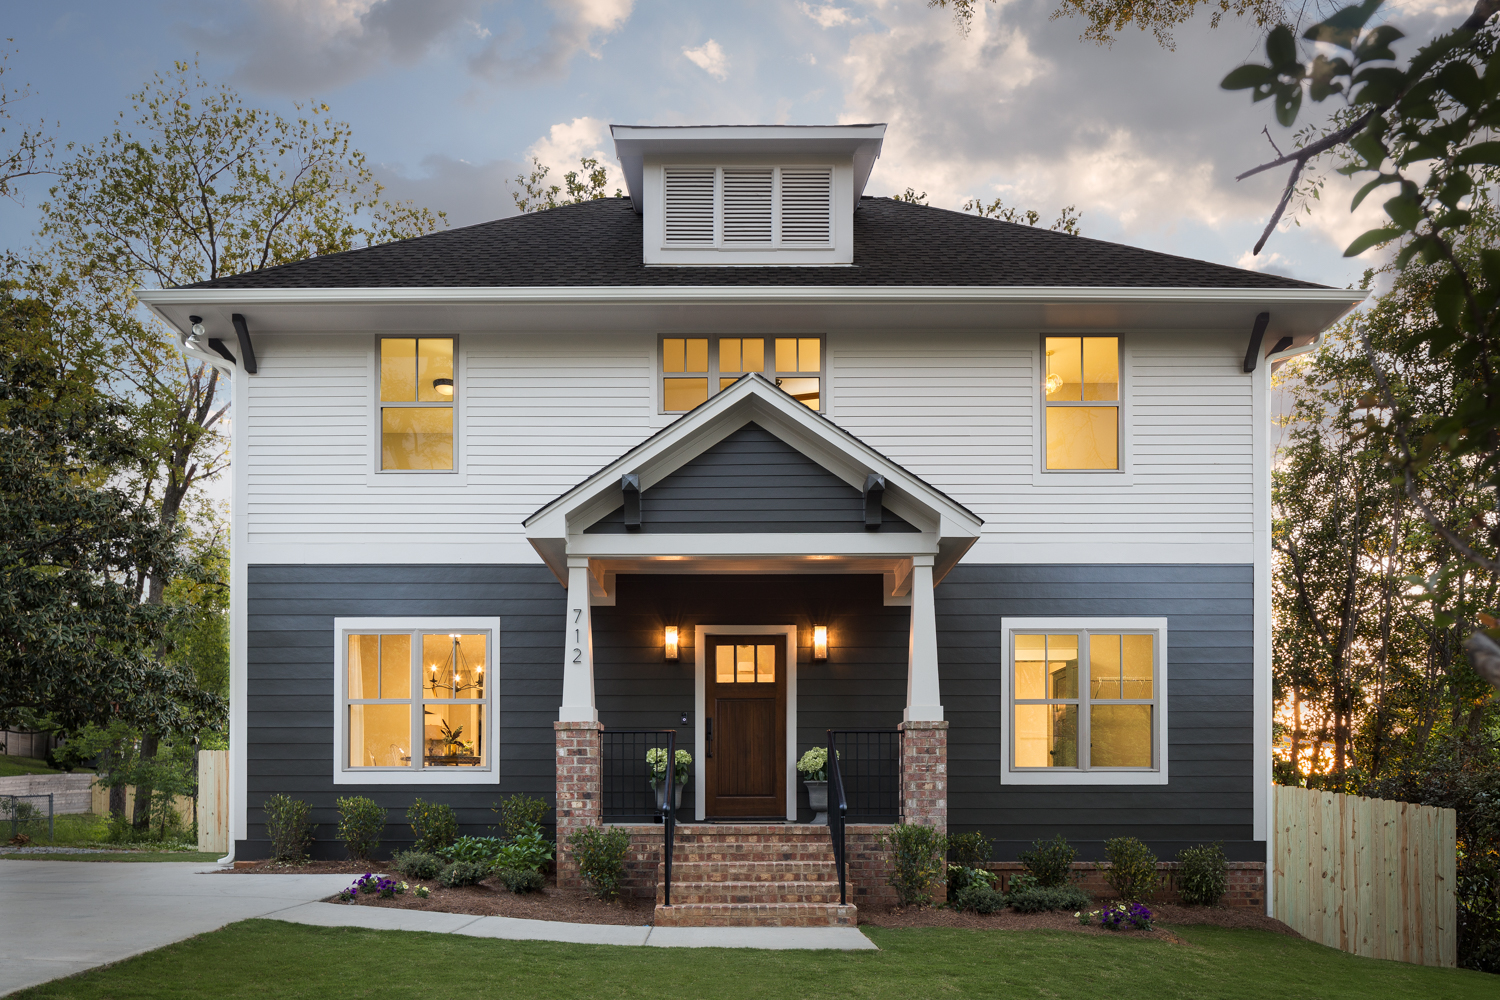 Willow Homes - Birmingham AL Architectural Photography